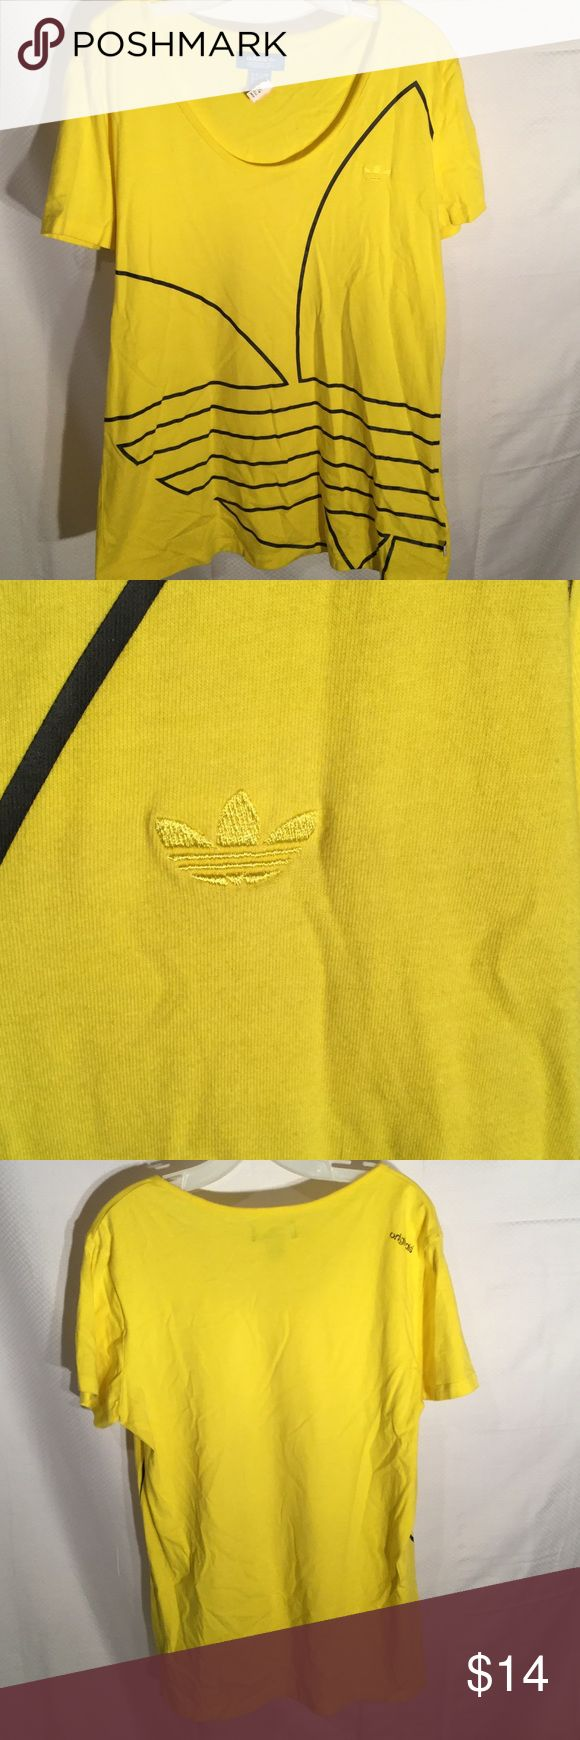 Adidas ladies fun t shirt Ladies adidas yellow with black details short sleeved t shirt. Size L but generous and will cover butt . The black design is really the adidas logo blown up . Super cute and practical in a sunny yellow color. Worn once only Adidas Tops Tees - Short Sleeve